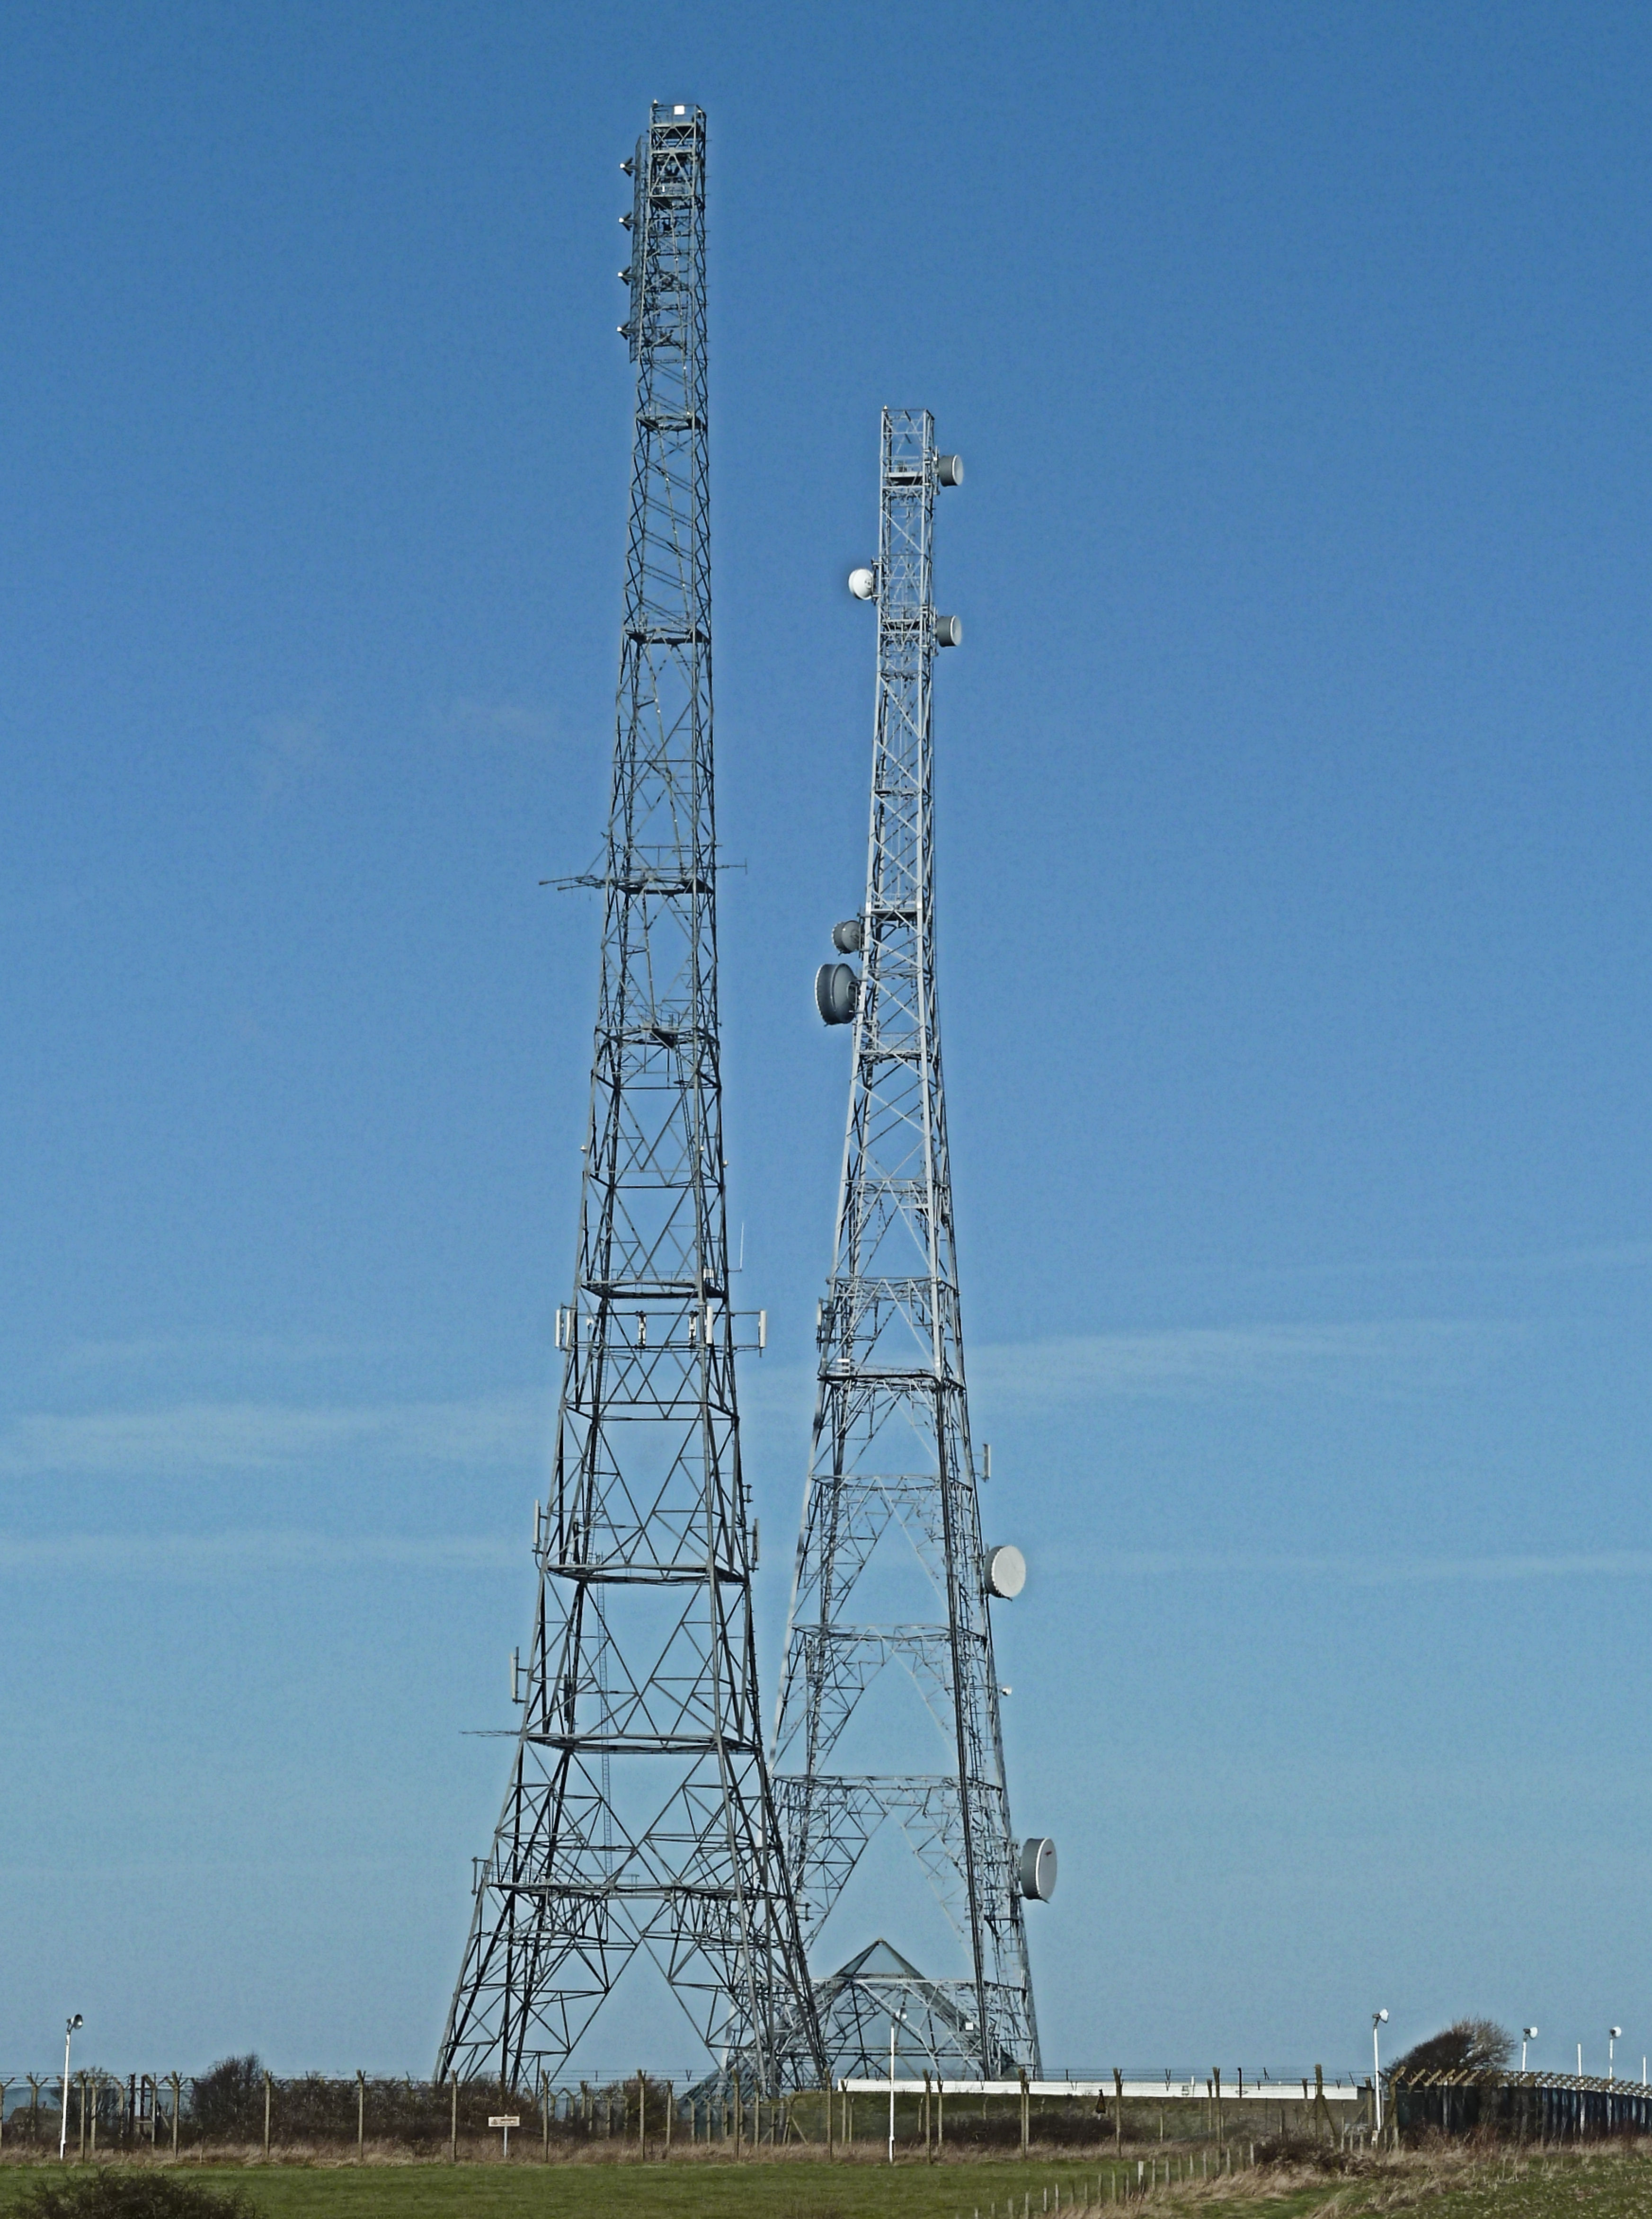 Radio Tower Diagram Pictures to Pin on Pinterest - ThePinsta